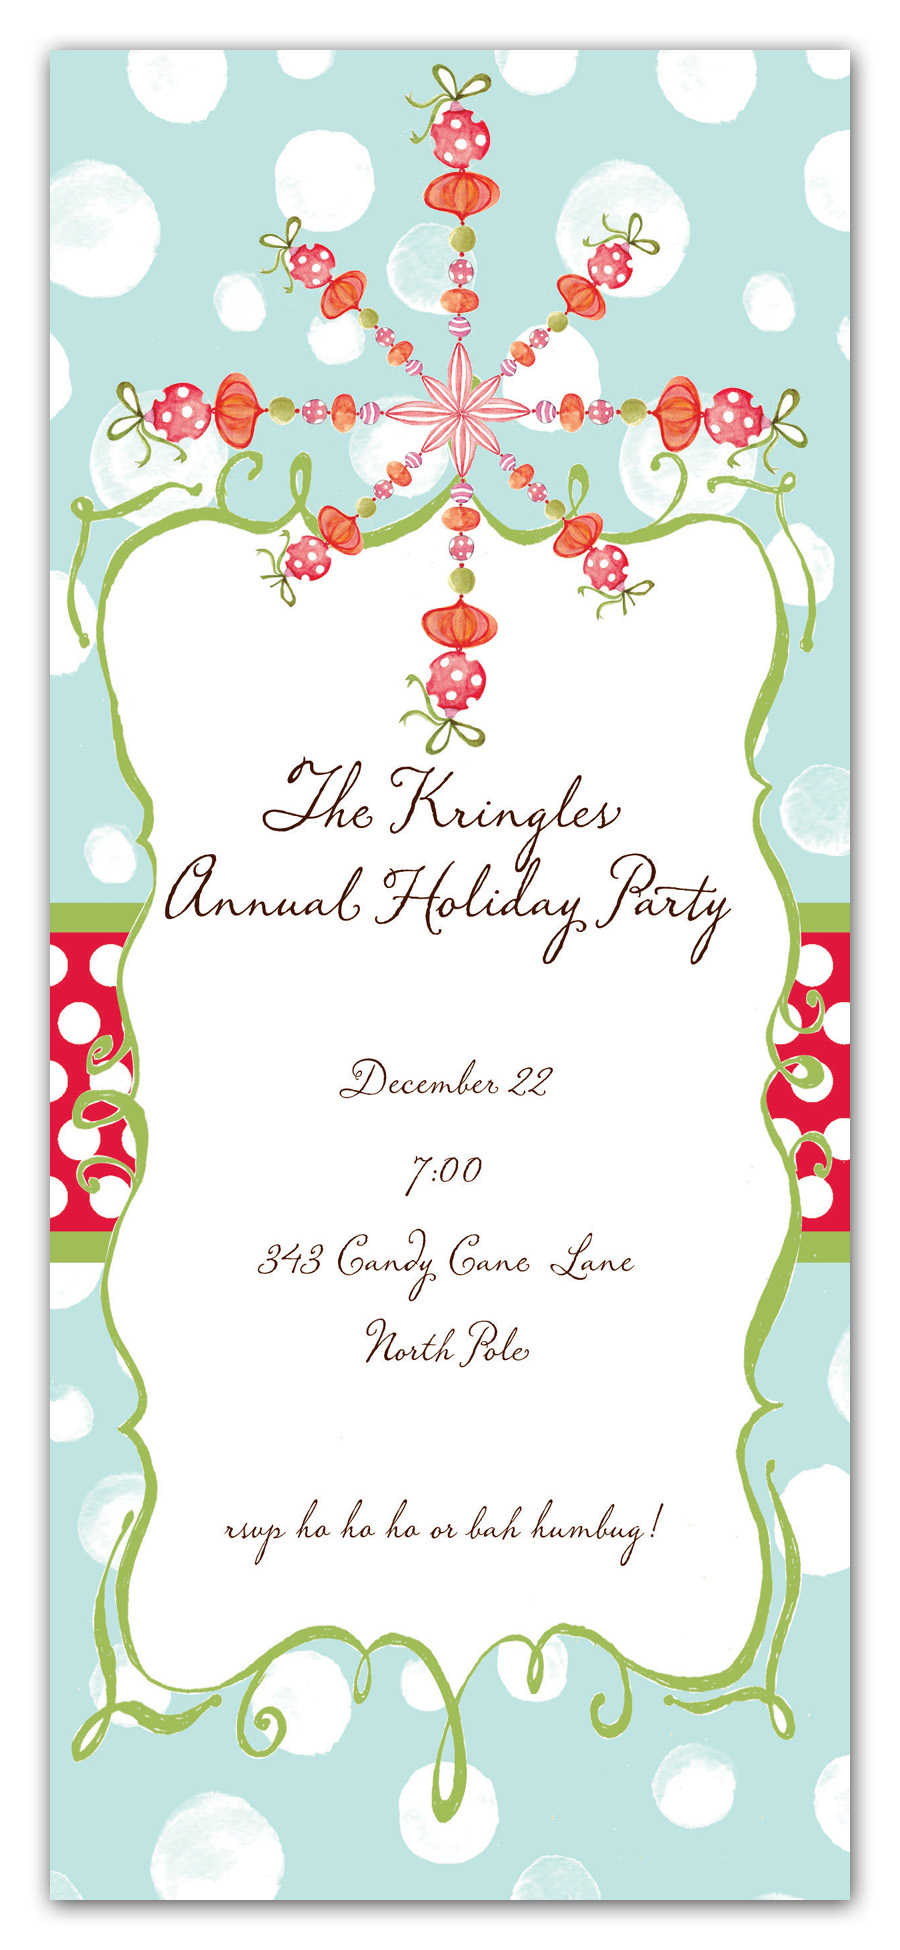 Holiday Invitation Templates Microsoft Word tm8bD7Fv